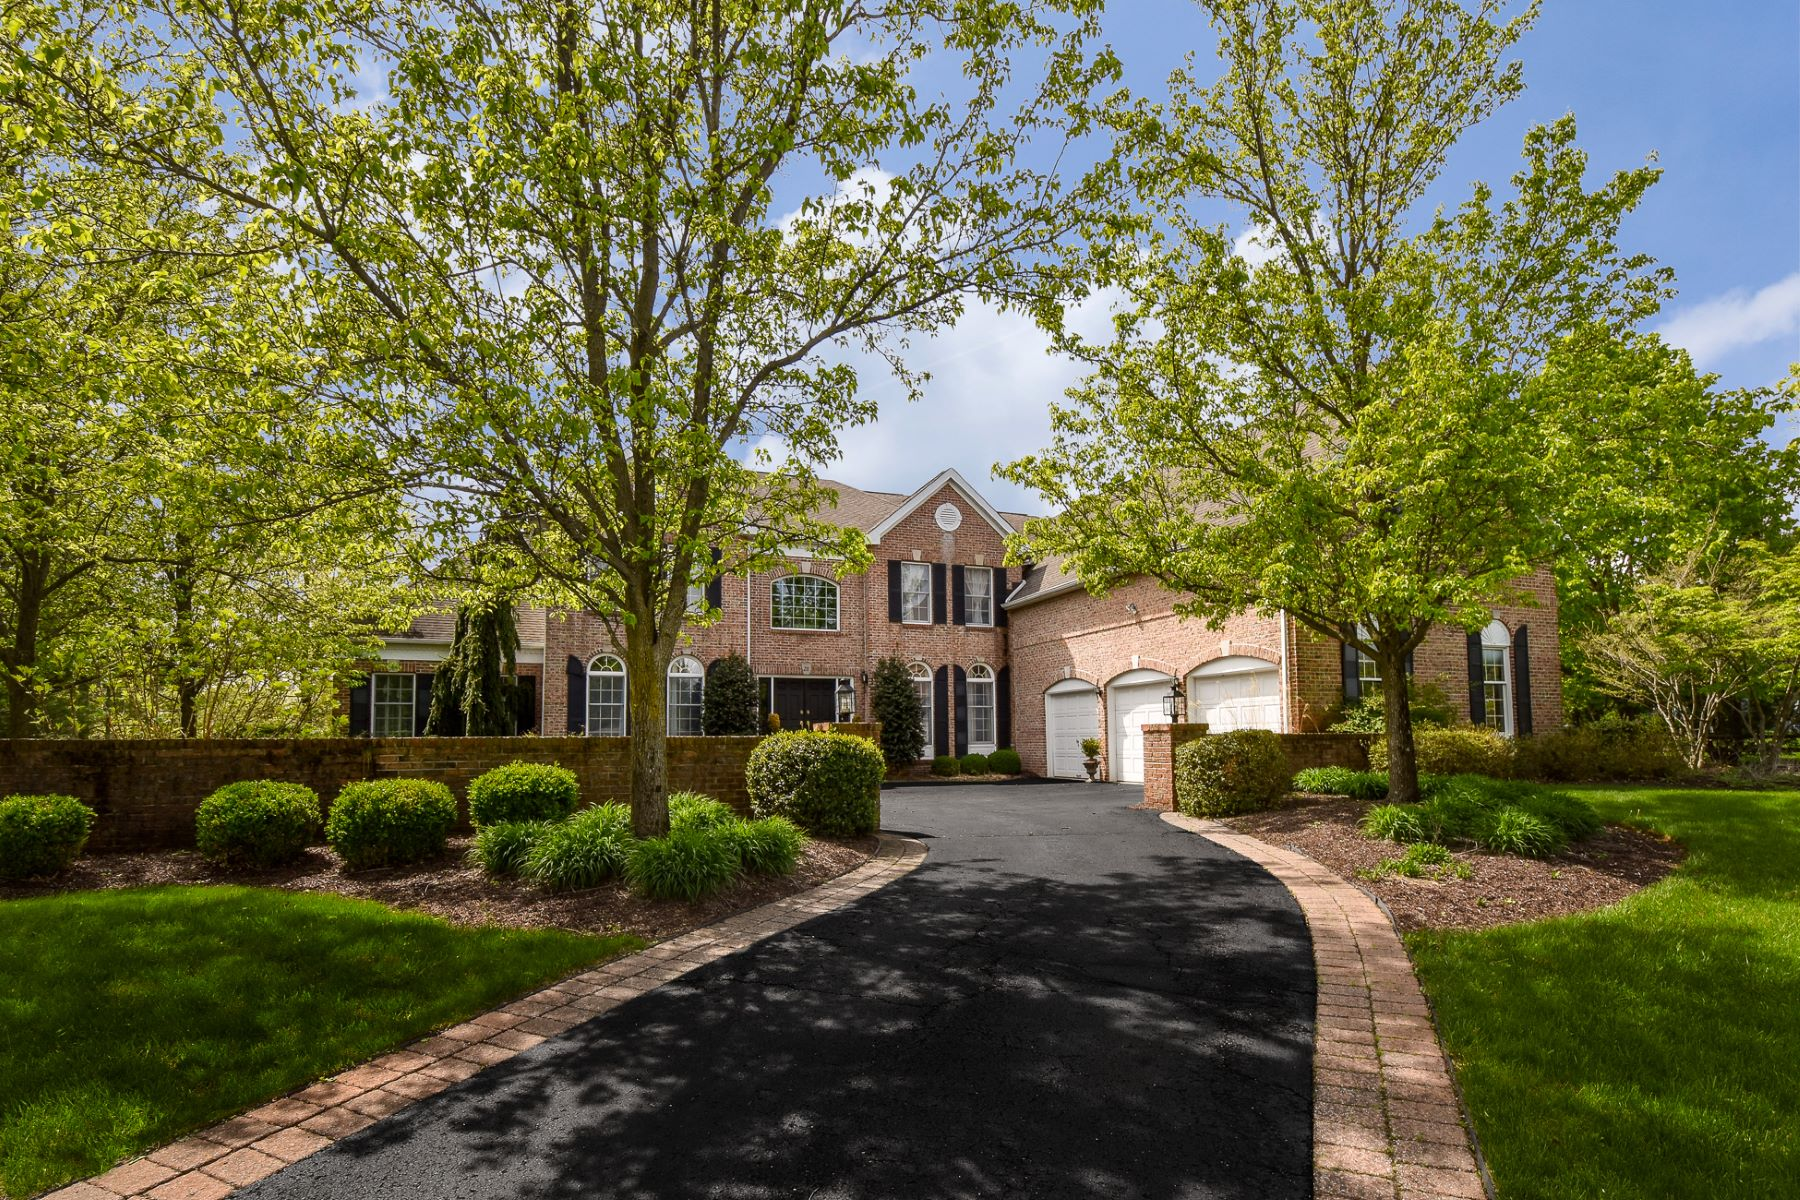 Nothing Short Of Exquisite in Bedens Brook Estates 28 Green Meadow Road, Skillman, New Jersey 08558 Vereinigte Staaten